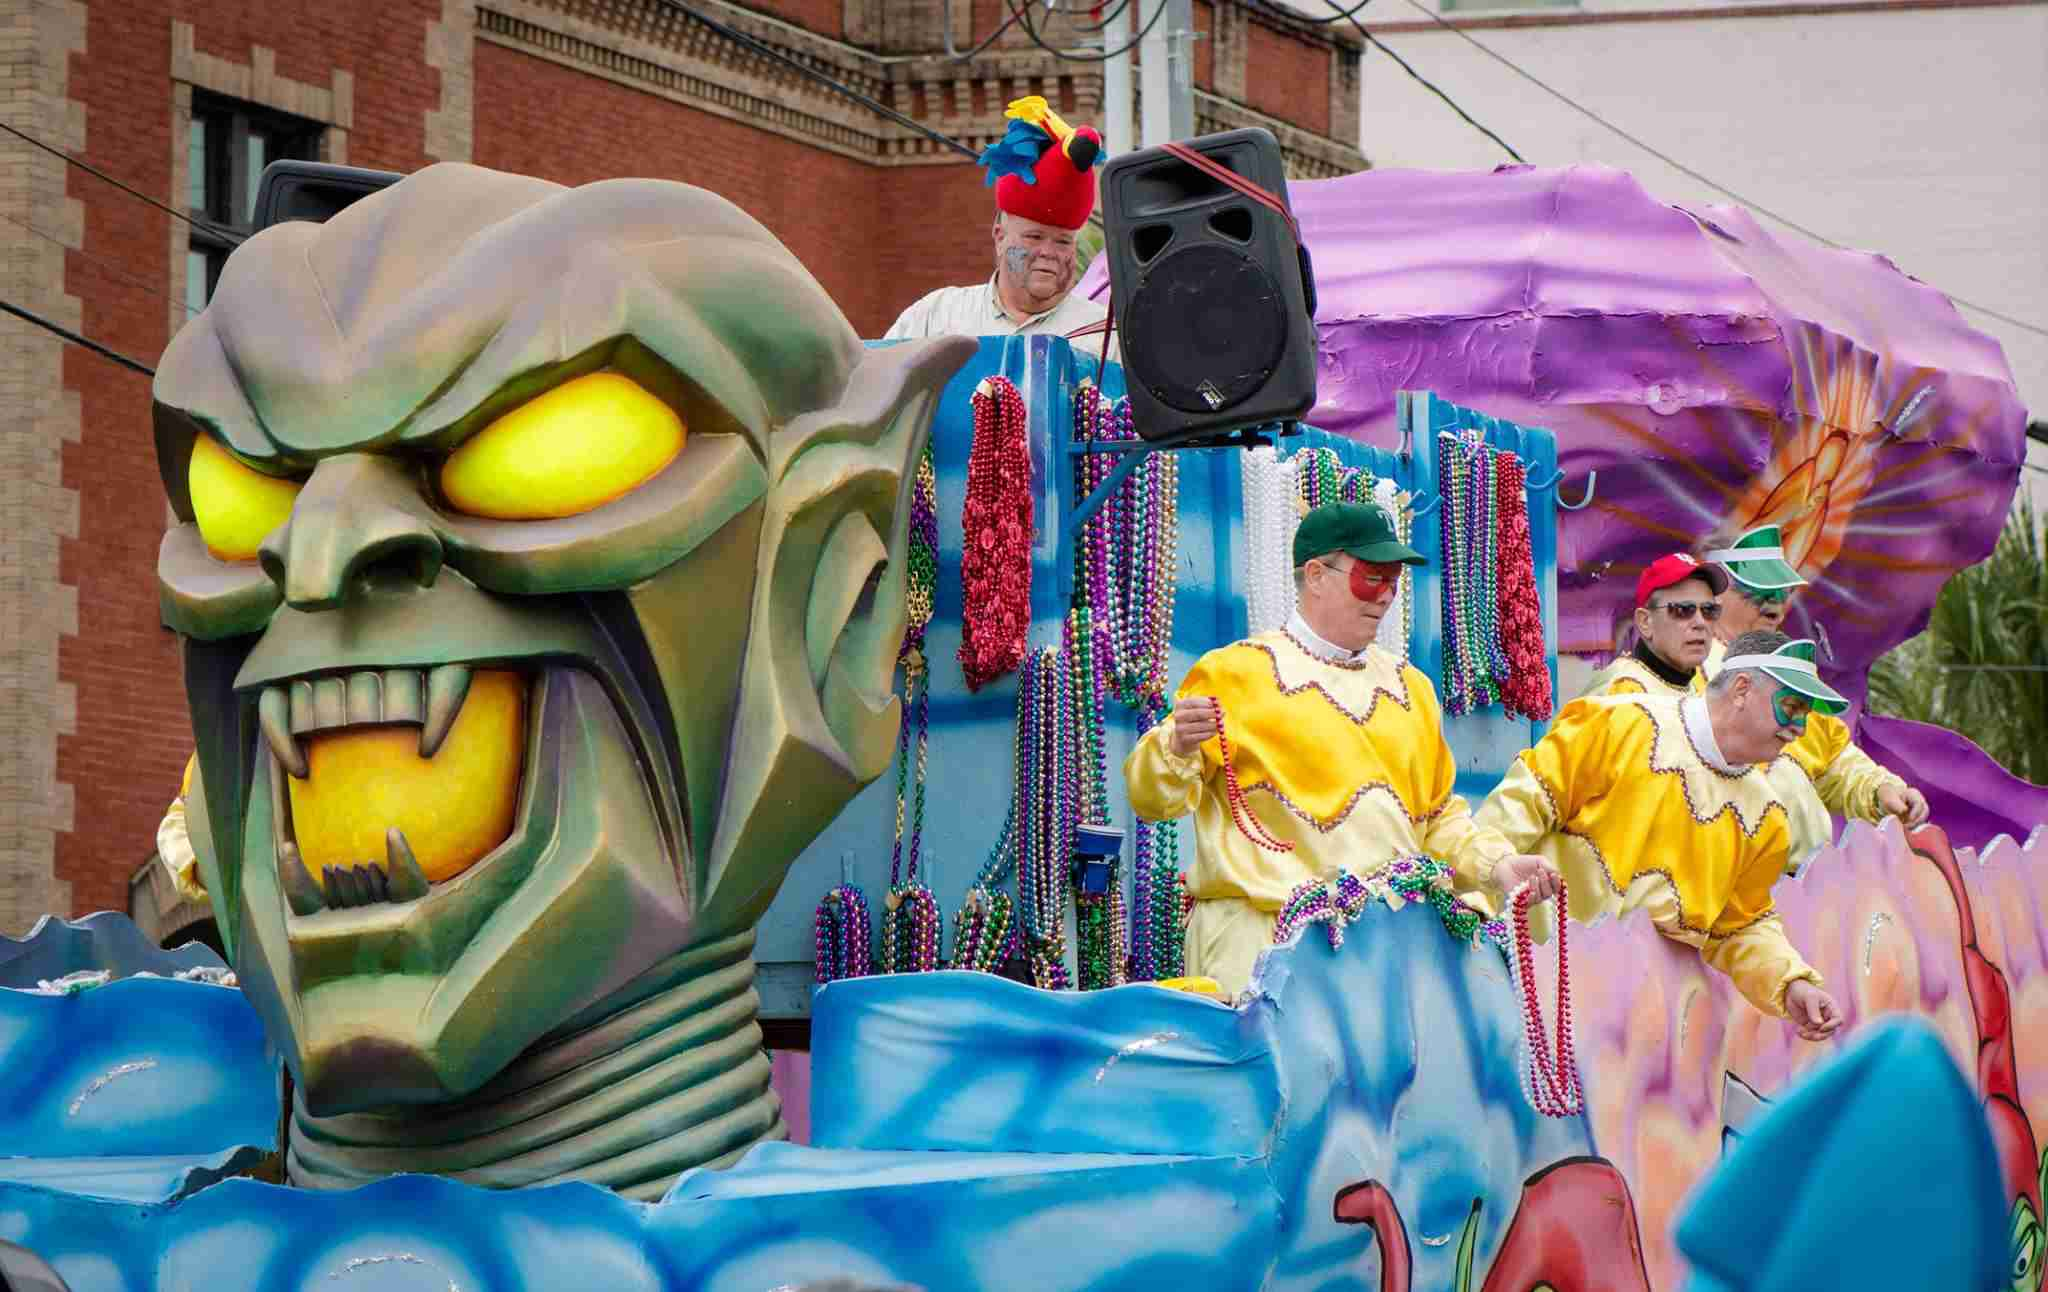 5599c3aa010a6 The Best Cities for Celebrating Mardi Gras in the US